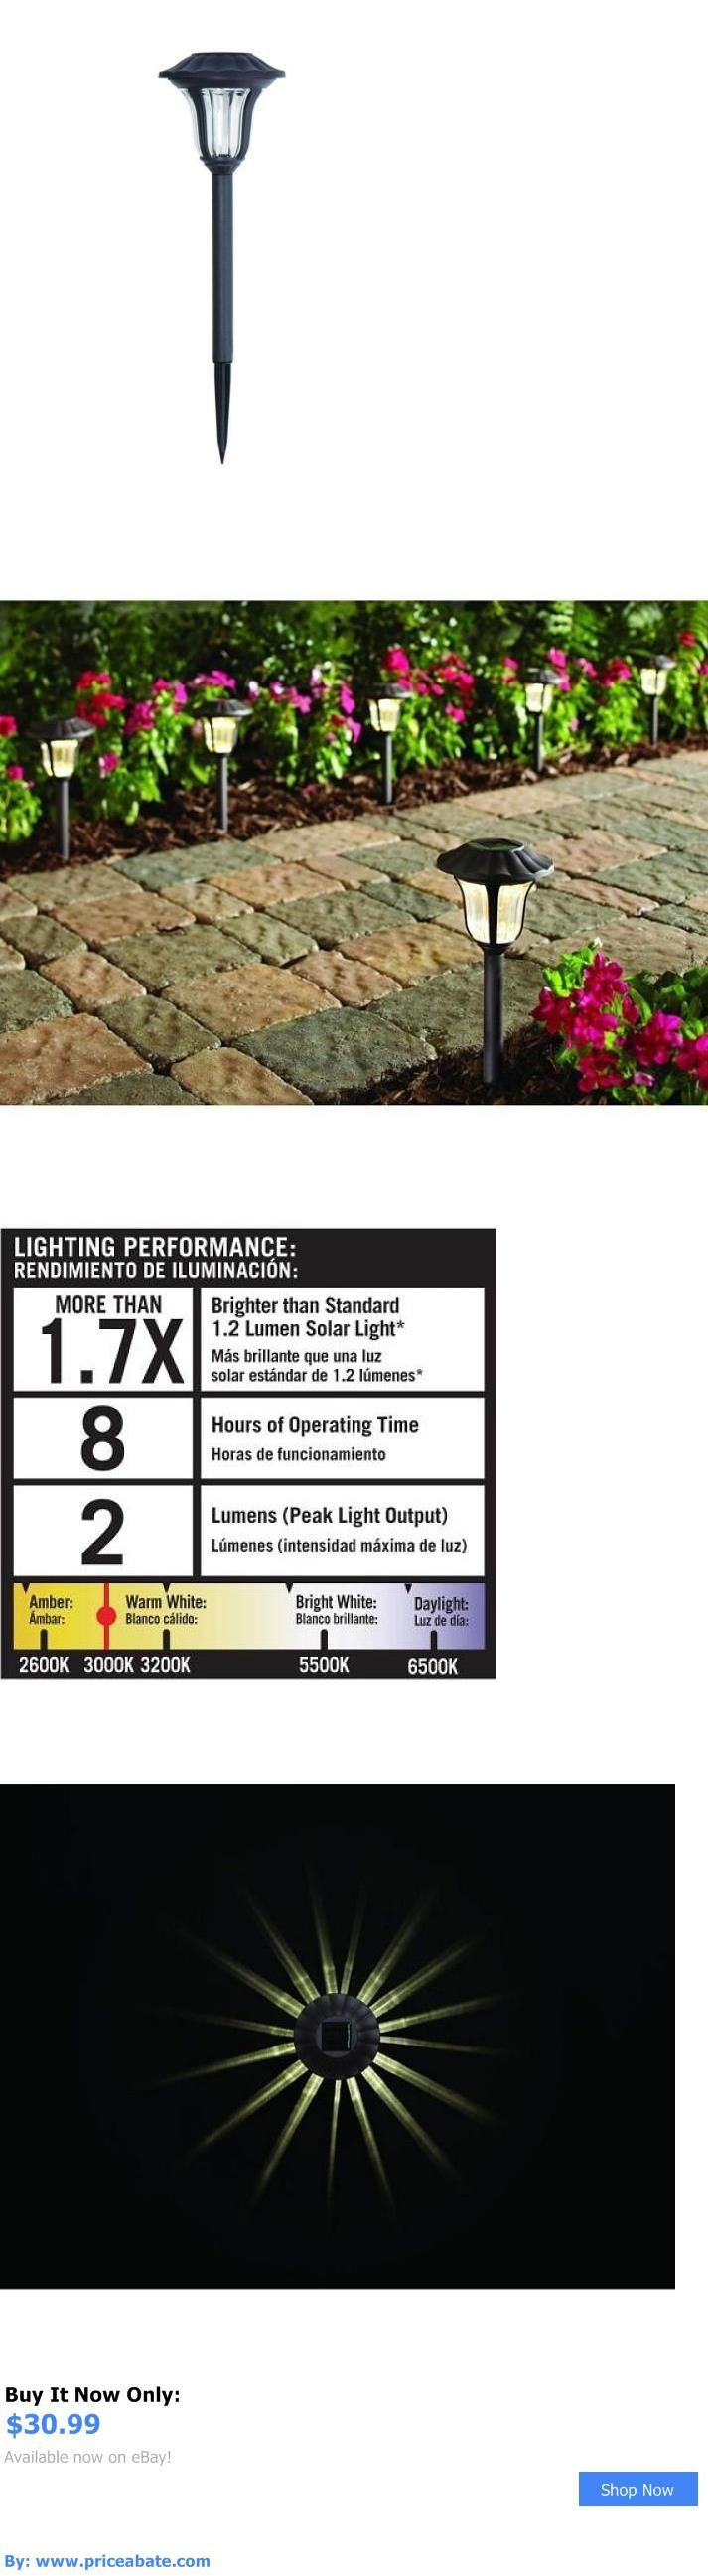 Solar power round recessed deck dock pathway garden led light ebay - Farm And Garden Solar Driveway Lights Led Outdoor Garden Pathway Stakes 6 Pack Set